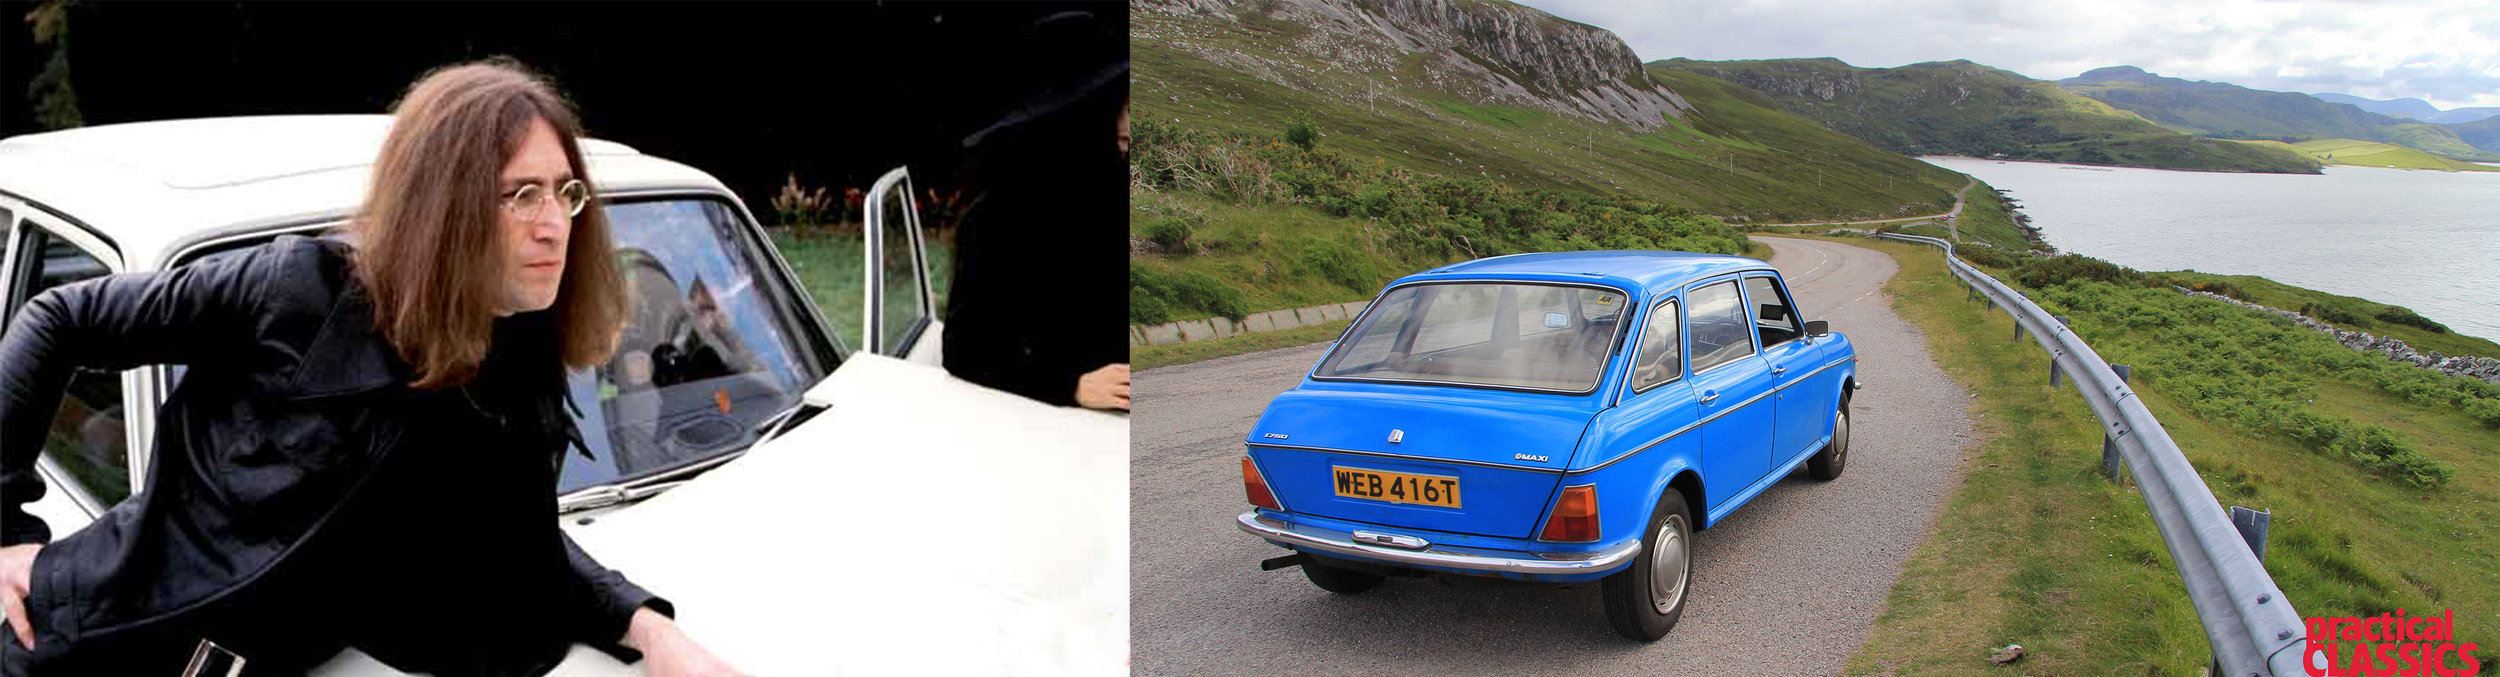 Lennon poses with the crashed Maxi (left) and James retraces his steps in northern Scotland (right).